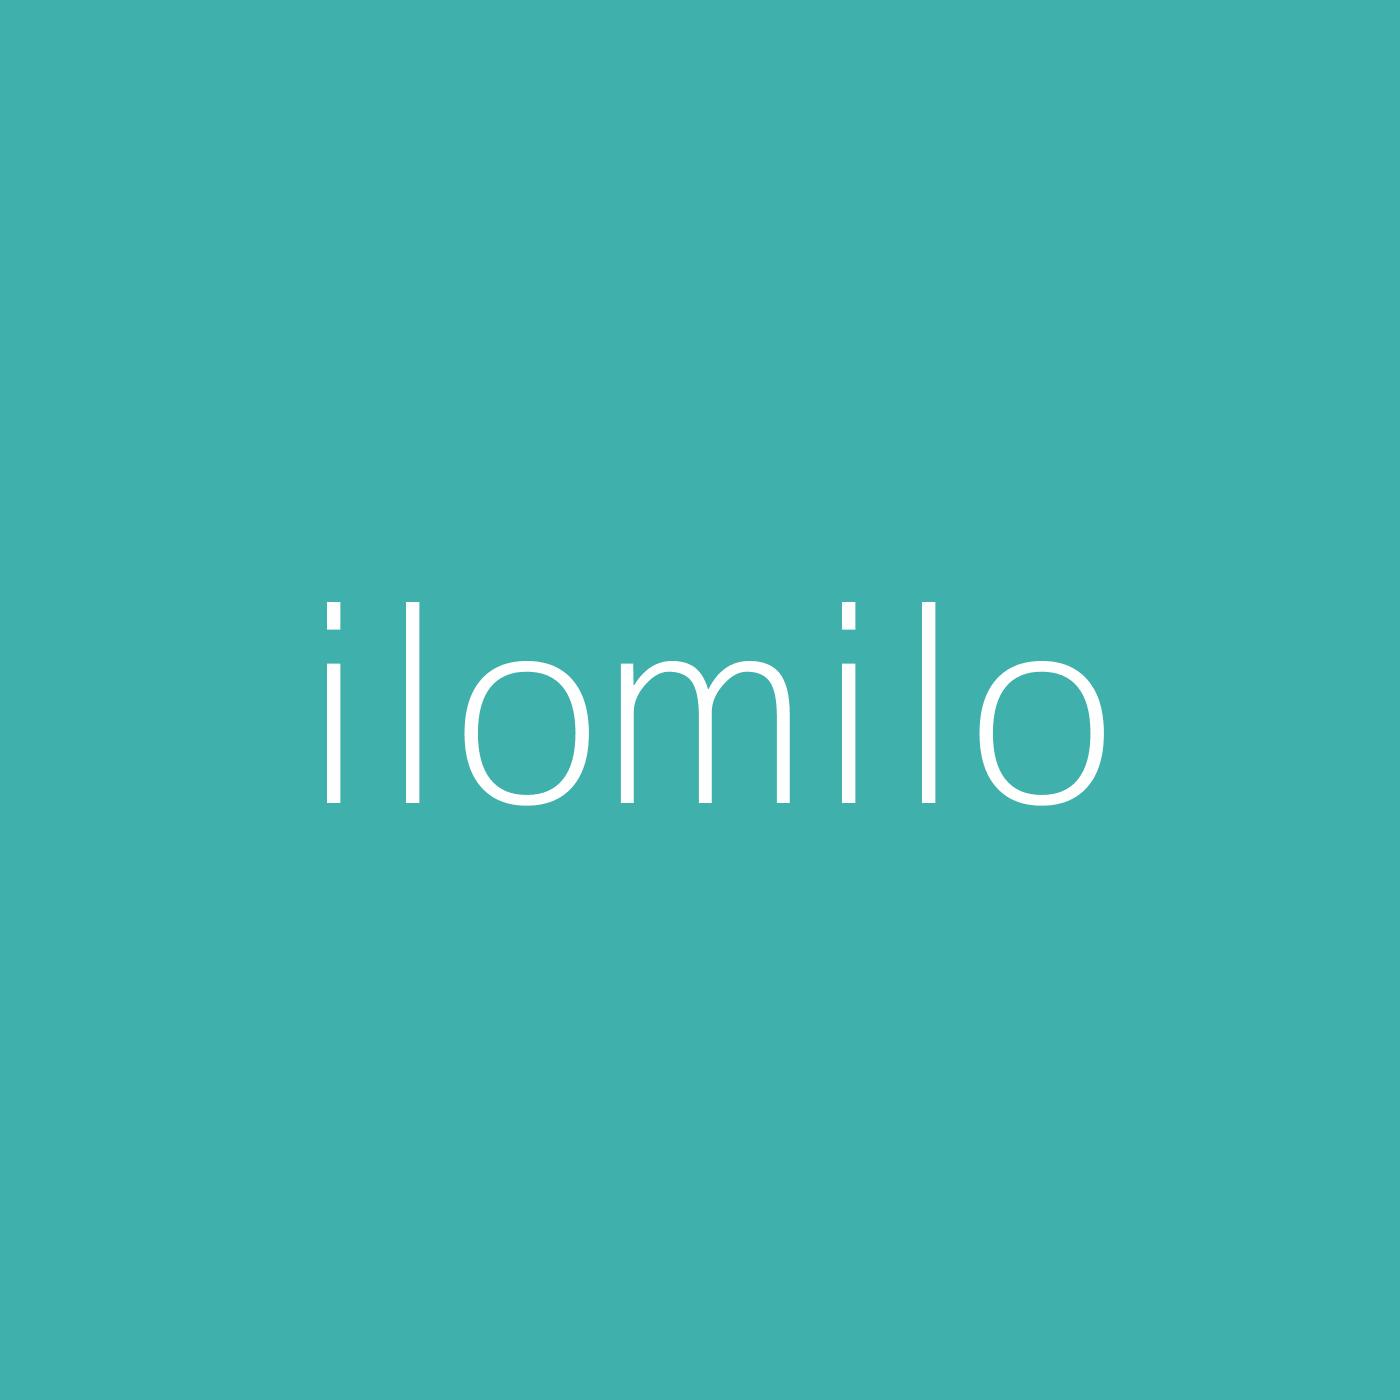 ilomilo – Billie Eilish